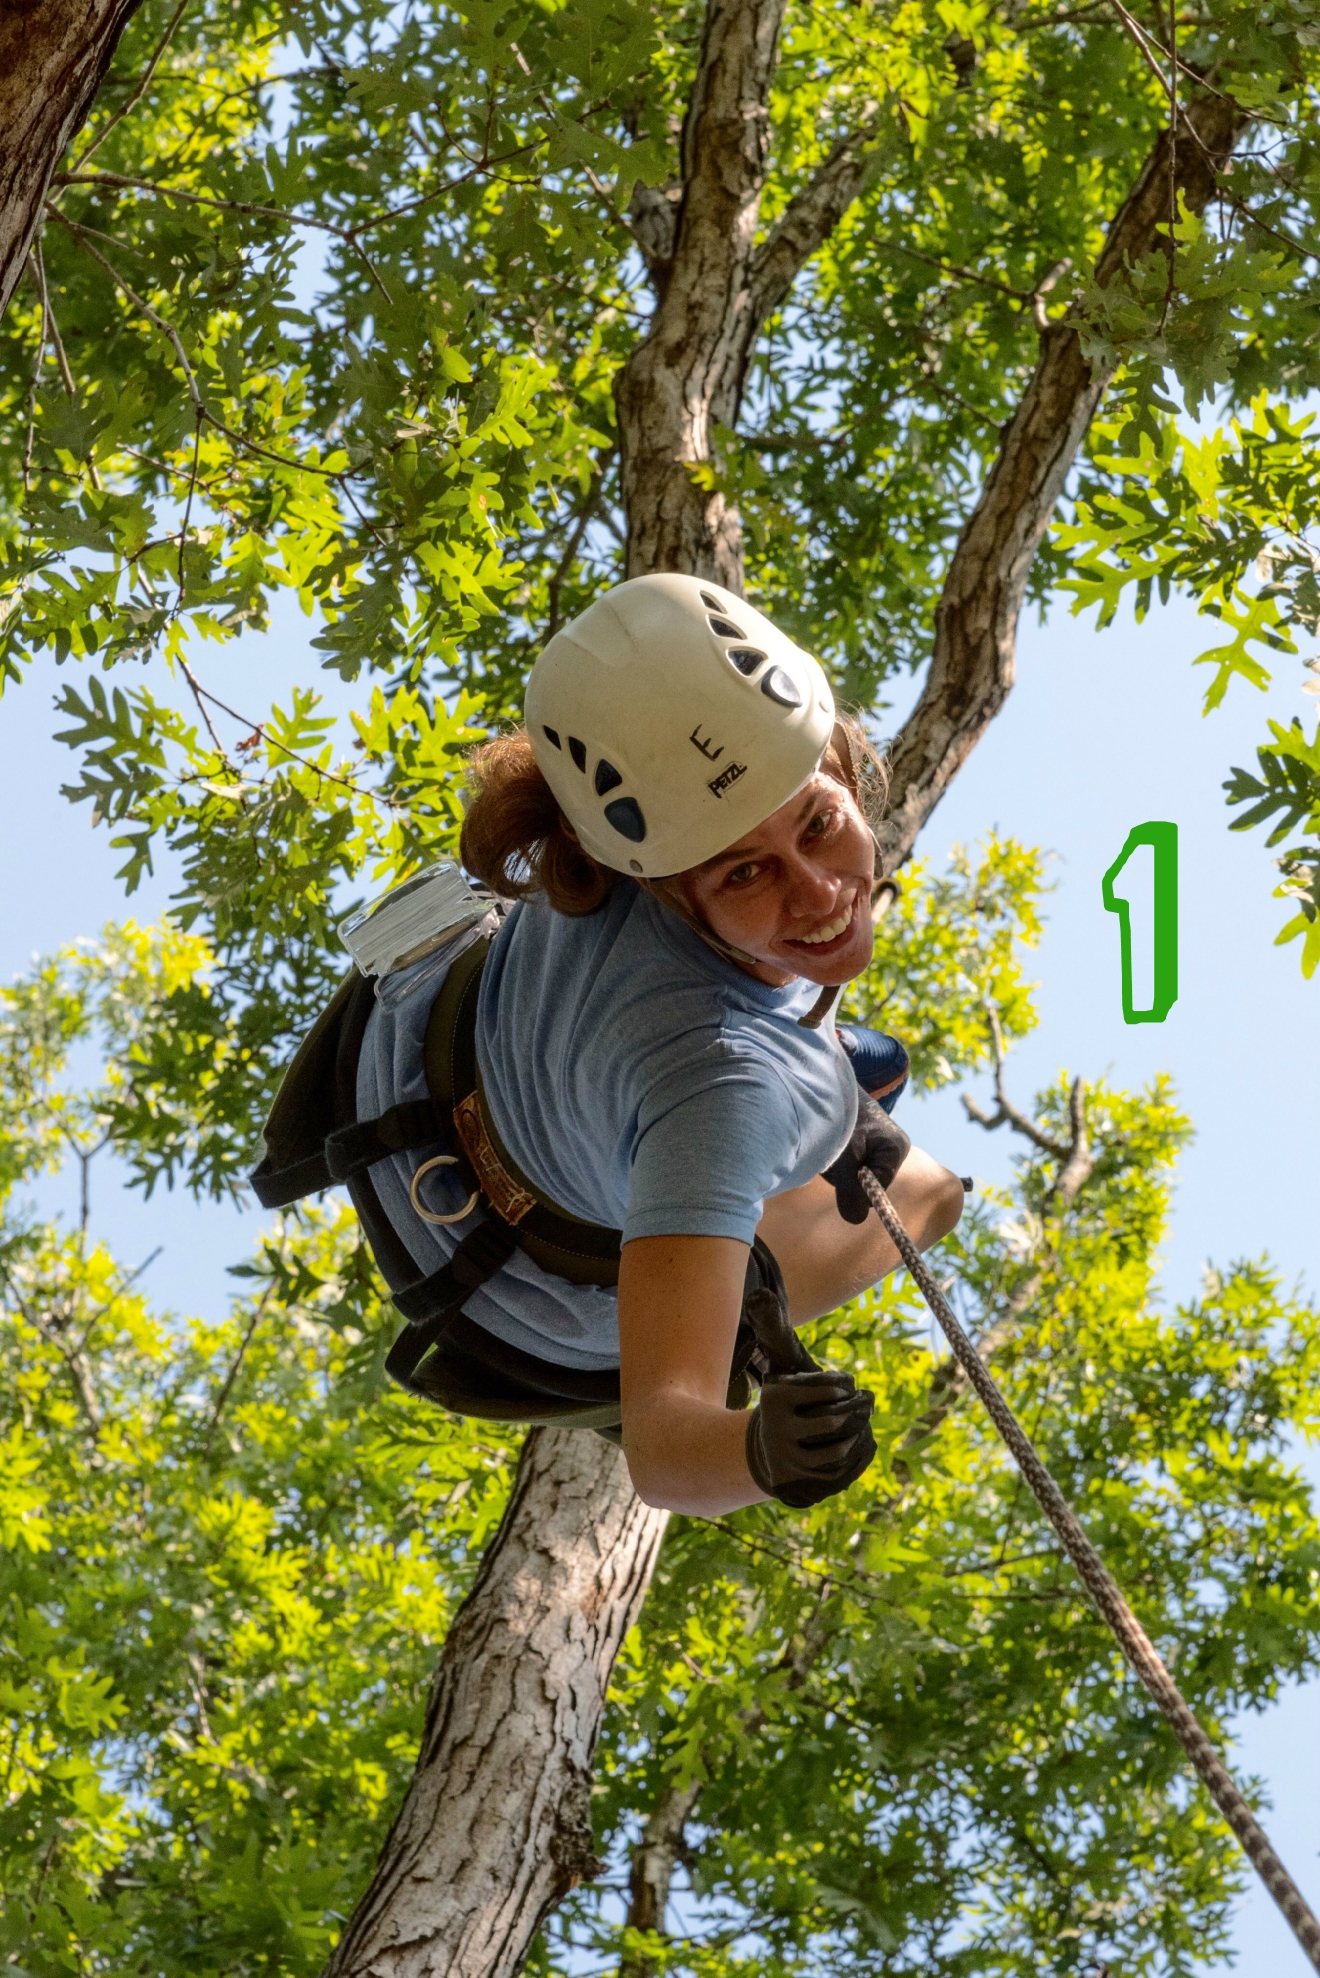 #1 - EarthJoy Tree Climbing Adventures is pretty much the best thing since sliced bread. Yes, it gets that much of a ringing endorsement. Check the Travel section on Friday to get the full scoop. / Image: Phil Armstrong, Cincinnati Refined